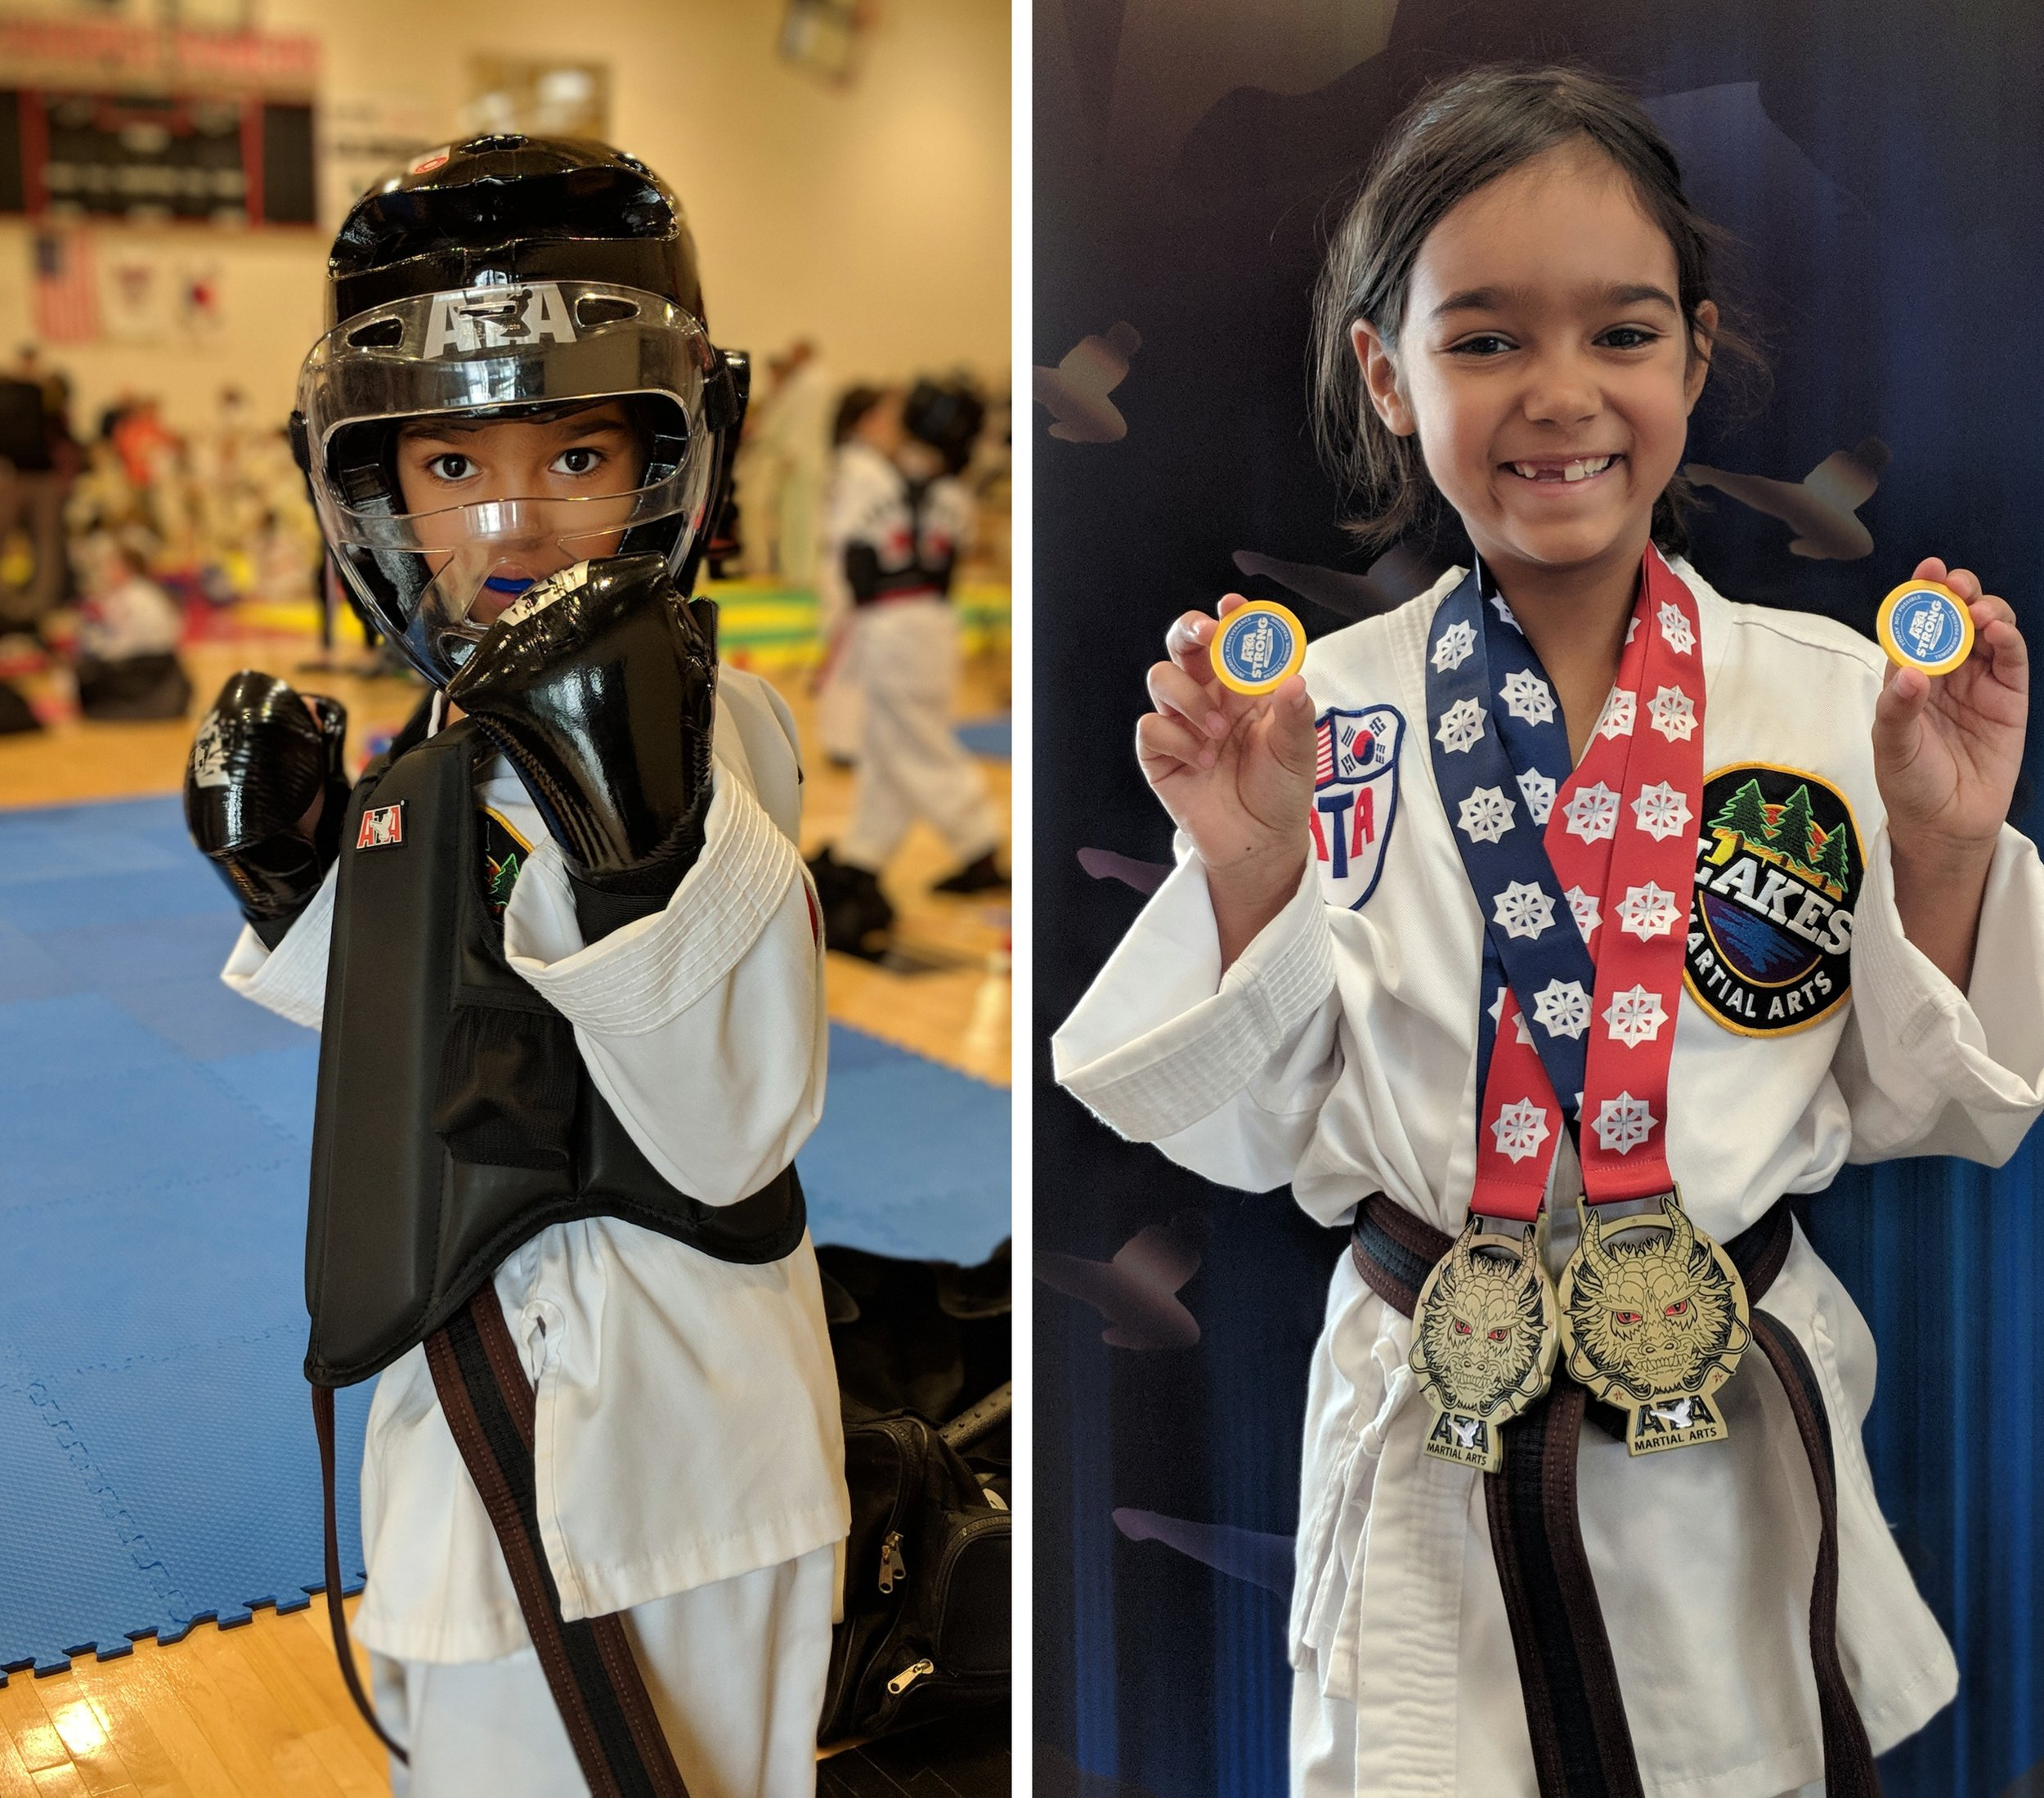 2018-twin-cities-tourney-lakes-martial-arts-011.JPG